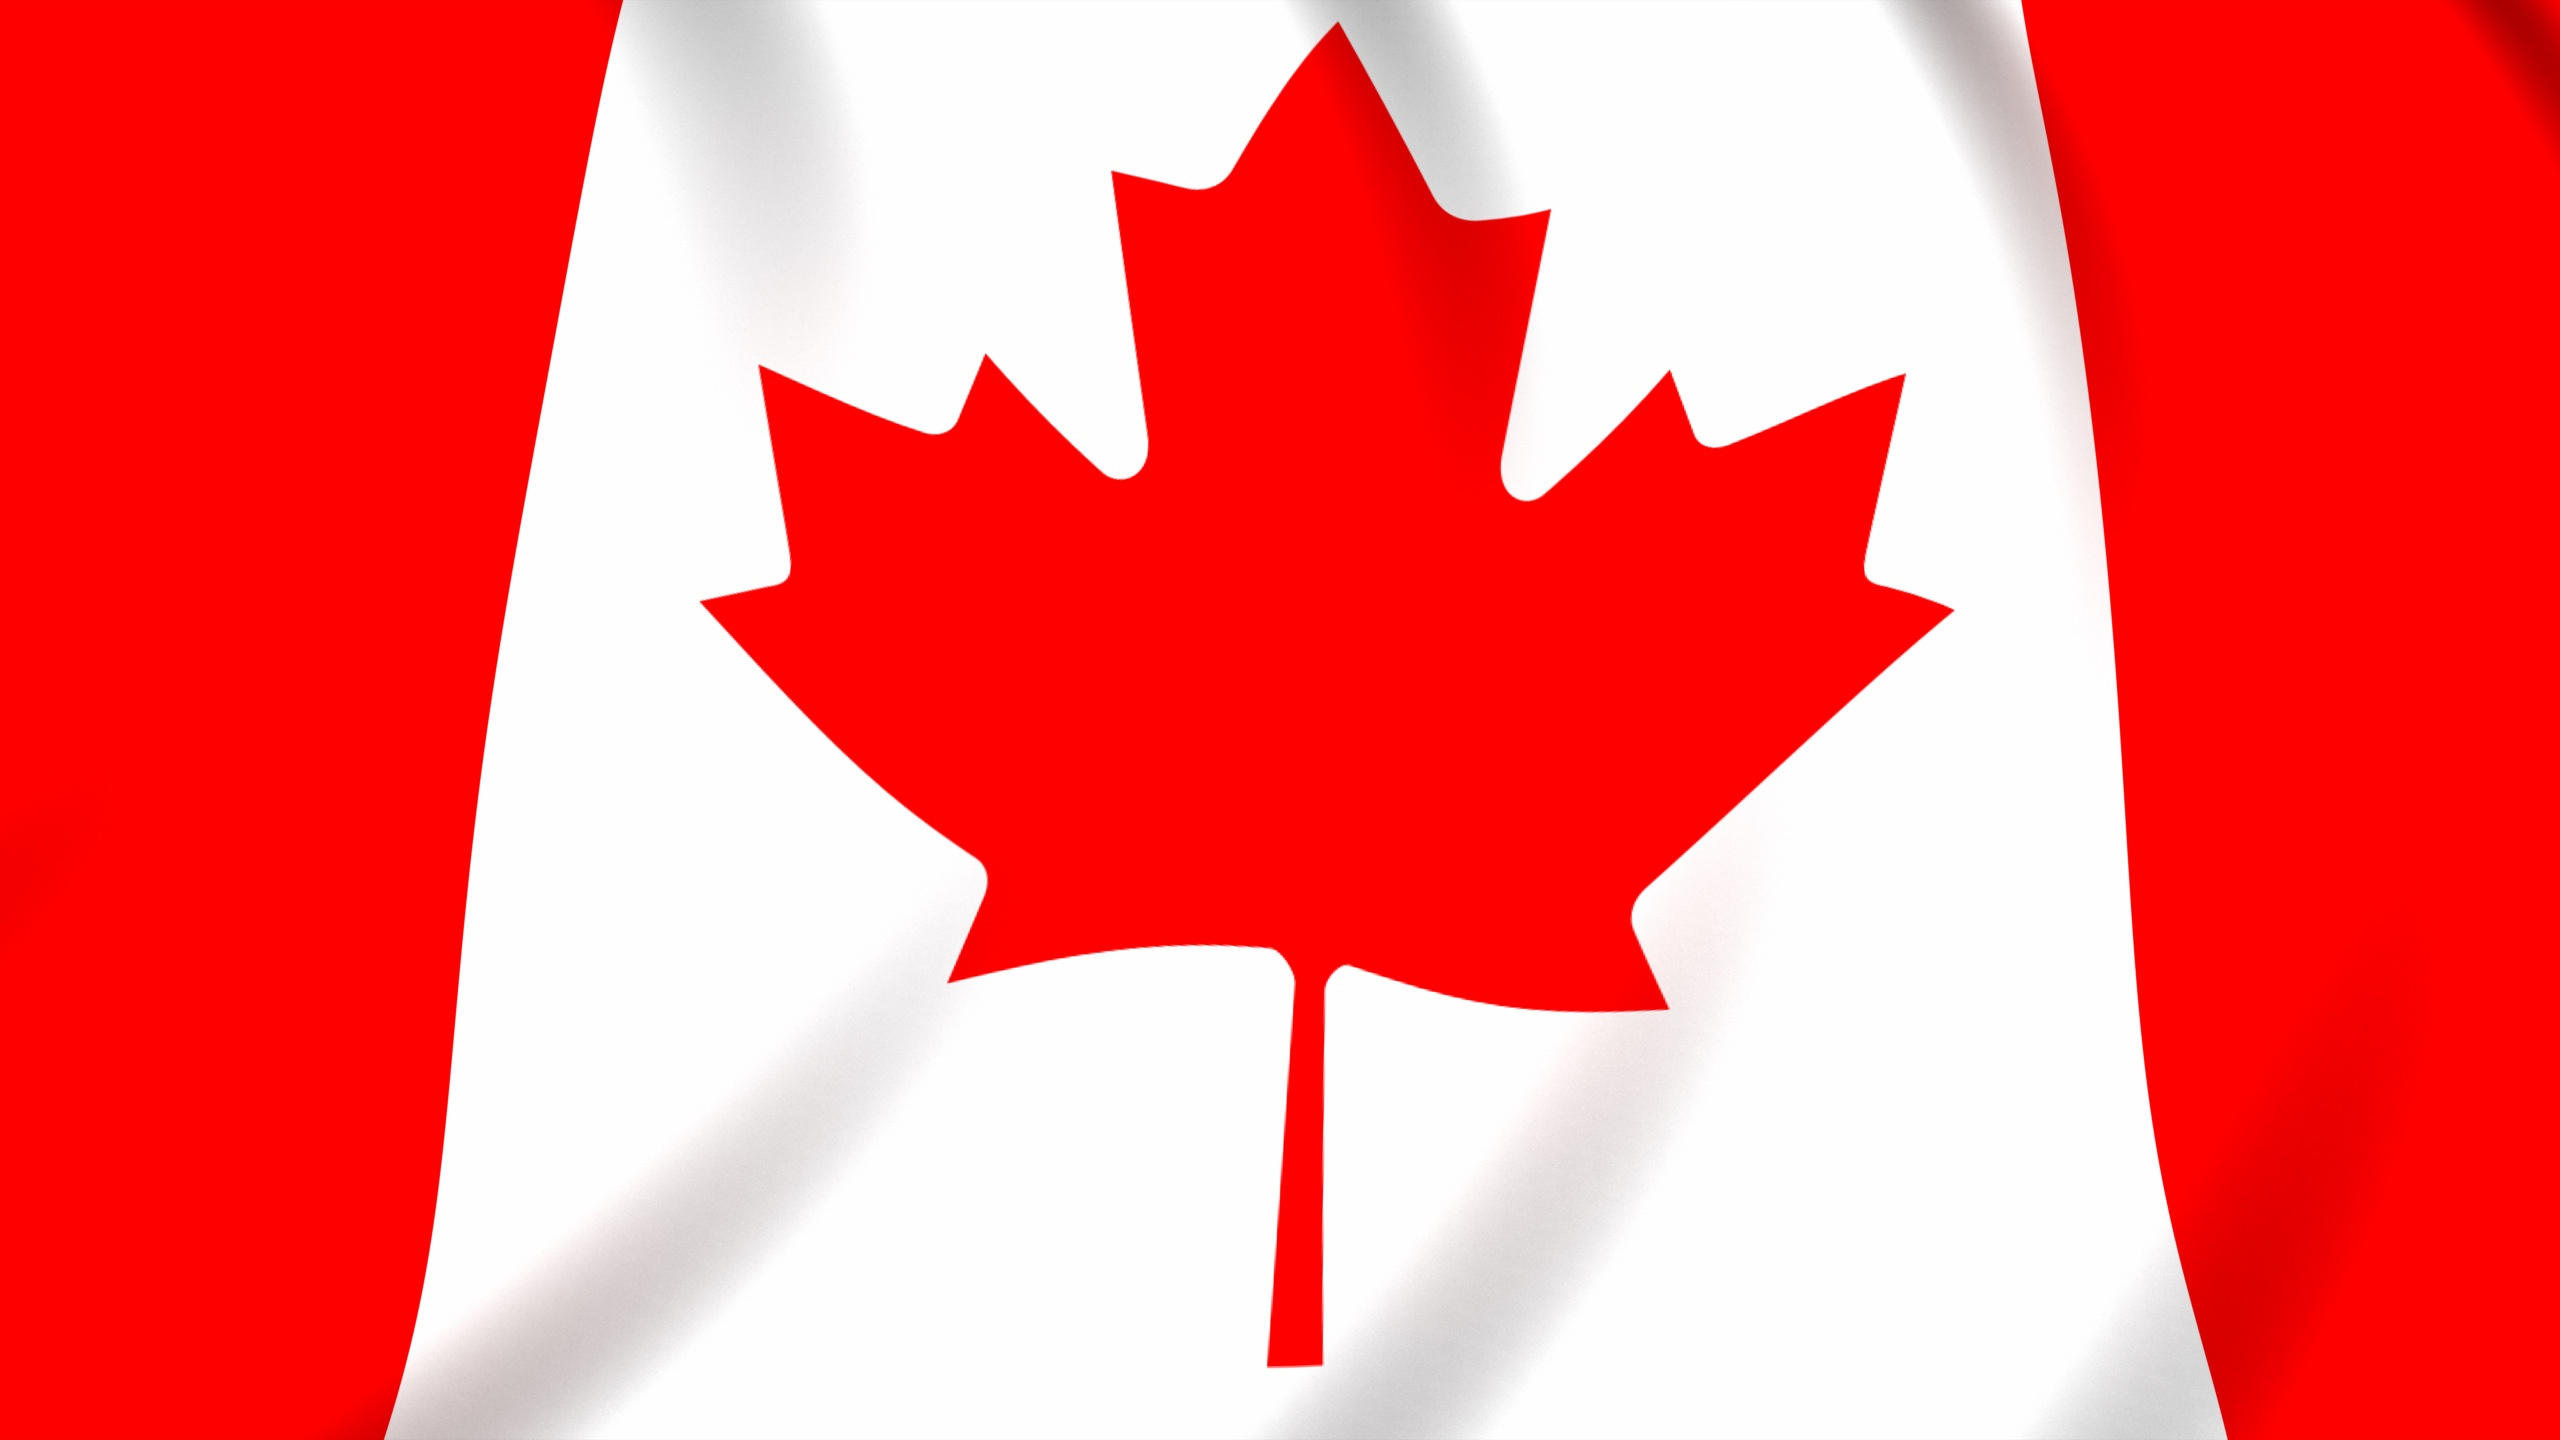 Canada flag wallpaper in 2560x1440 screen resolution 2560x1440